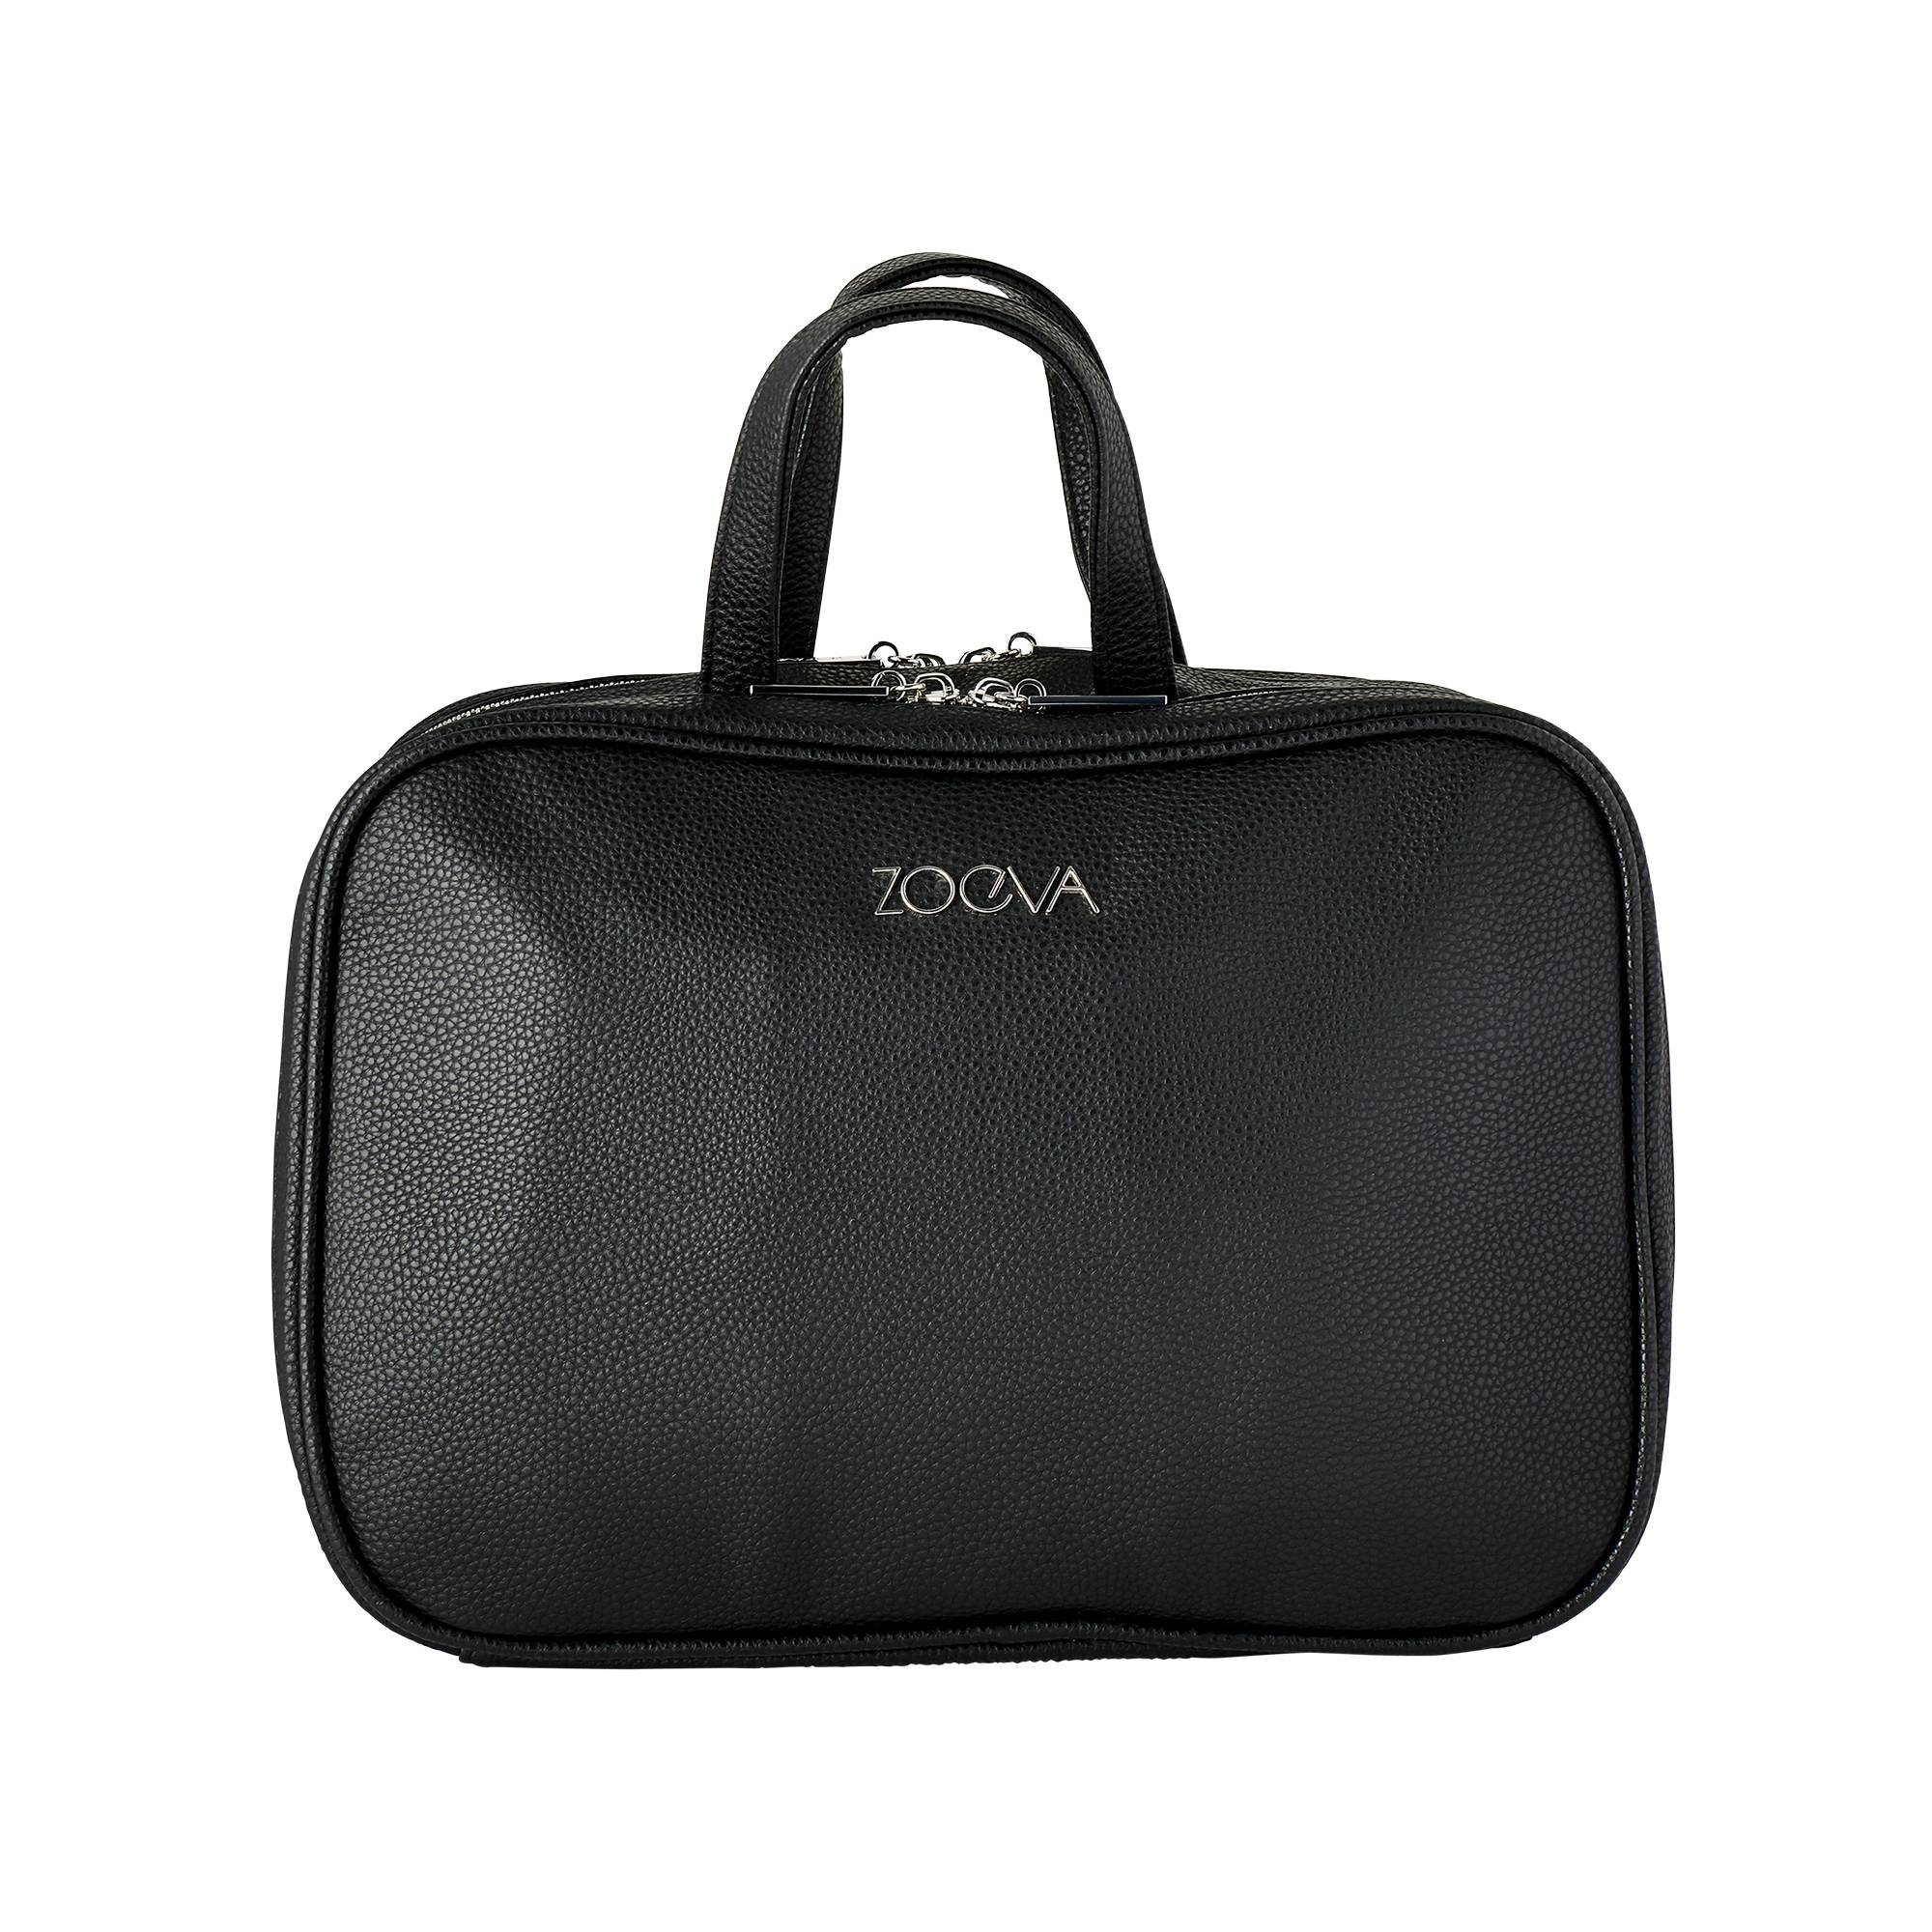 ZOEVA Makeup Tote Zoe Bag